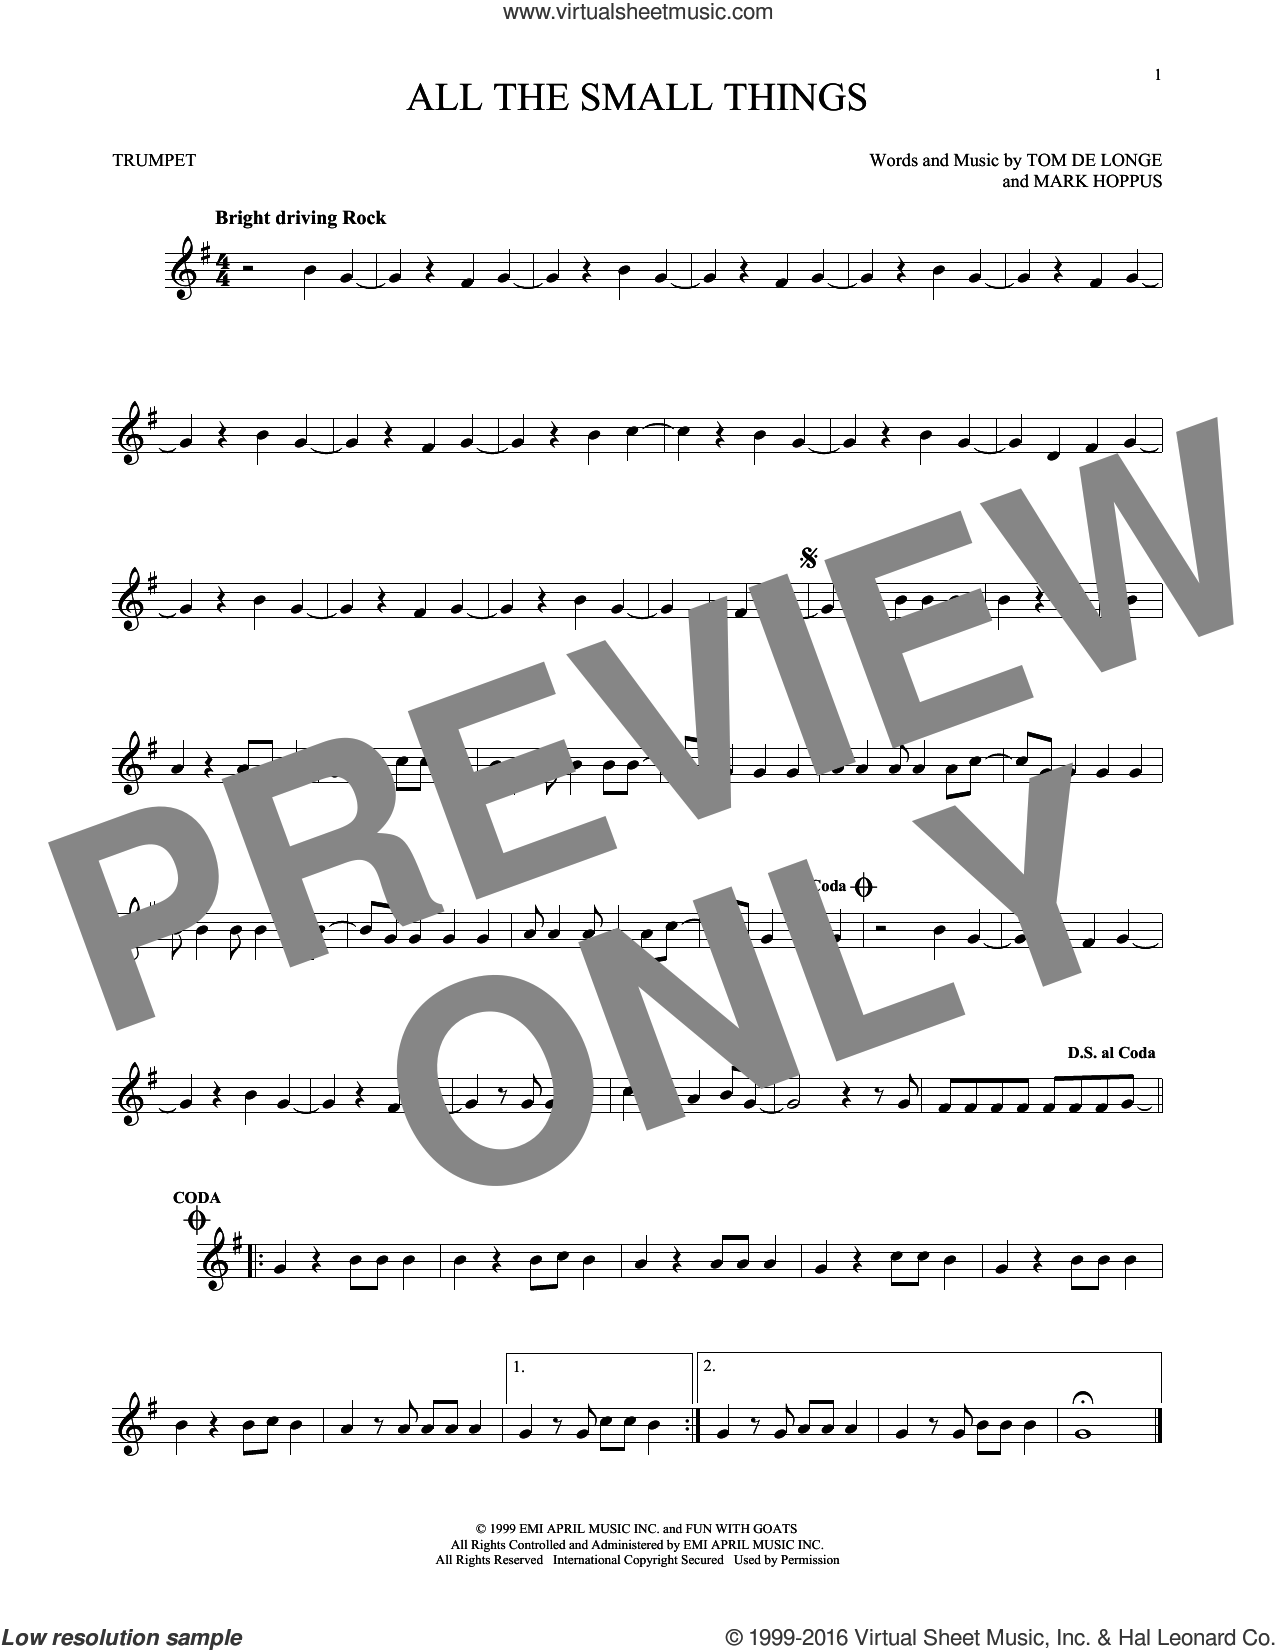 All The Small Things sheet music for trumpet solo by Blink 182, Mark Hoppus, Tom DeLonge and Travis Barker, intermediate skill level